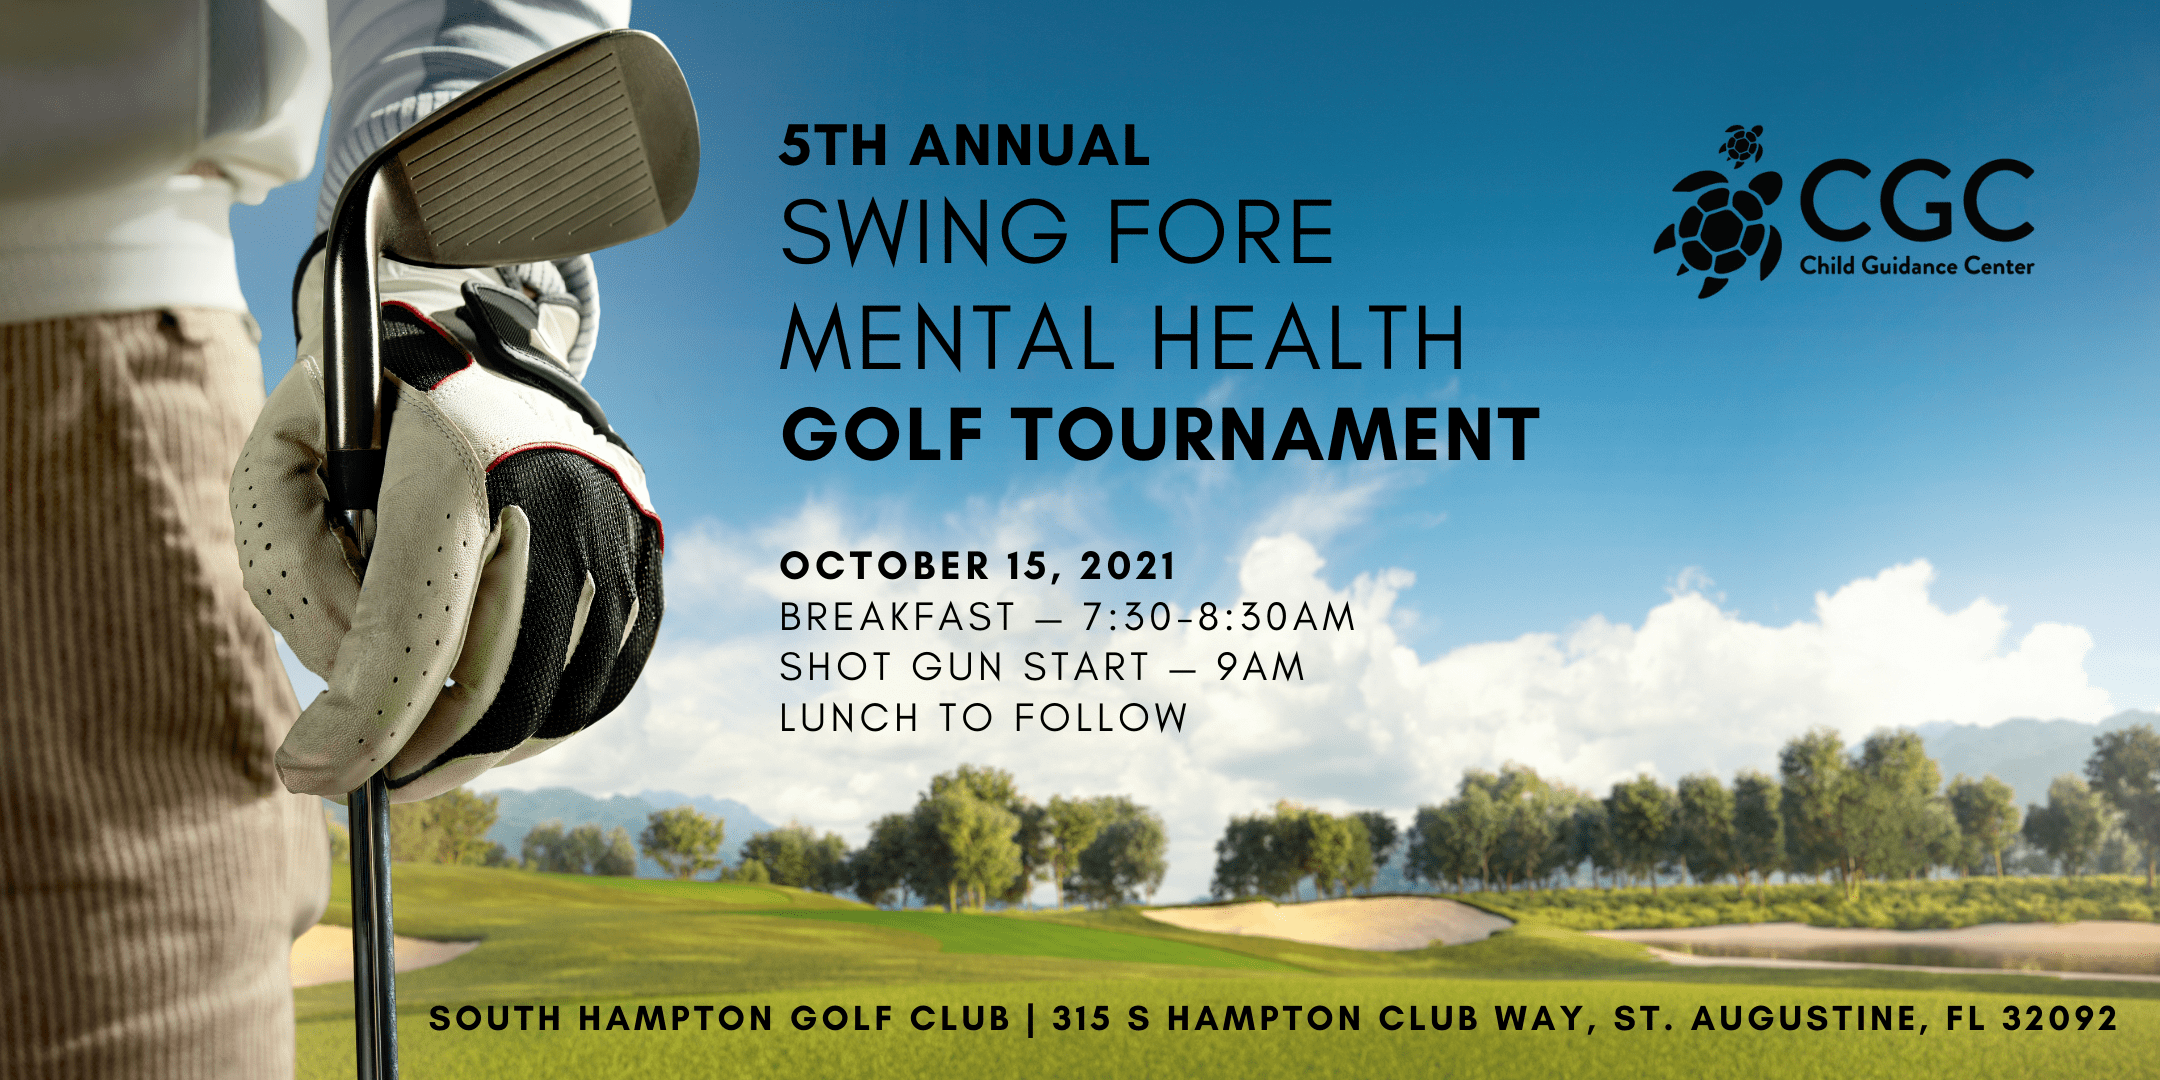 5th Annual Swing Fore Mental Health Golf Tournament